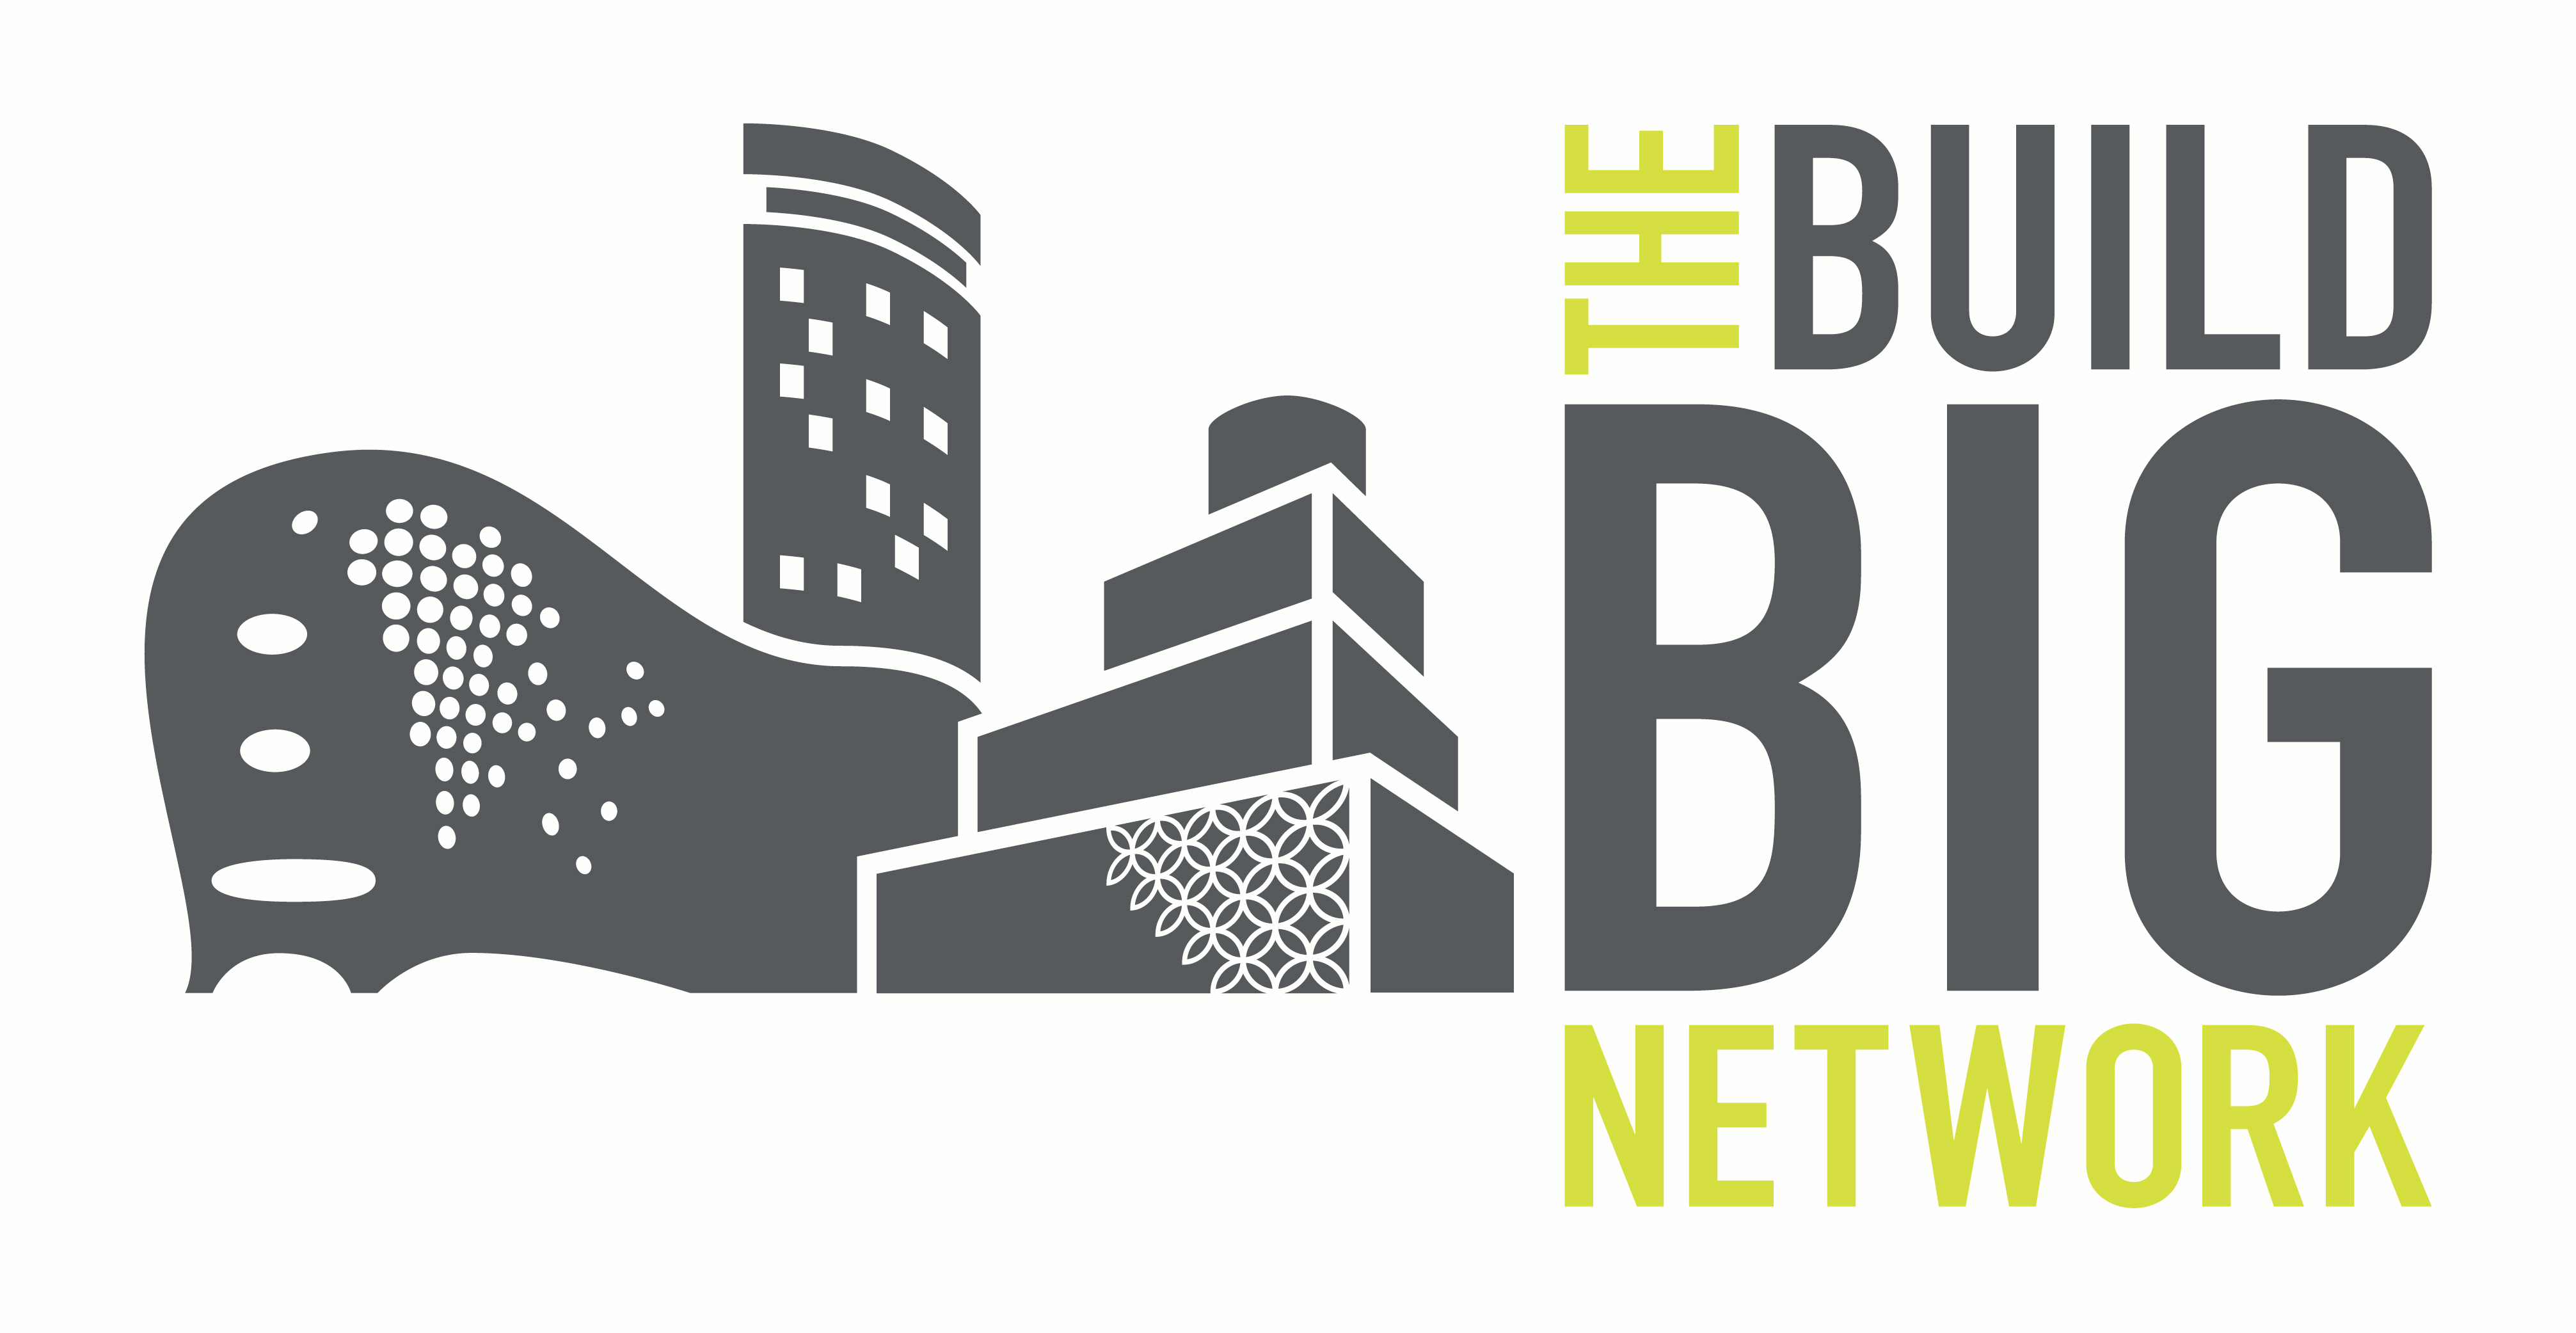 The Build Big Network. Else Solicitors. Business Networking. Solicitors in Birmingham. Solicitors in Burton upon Trent.